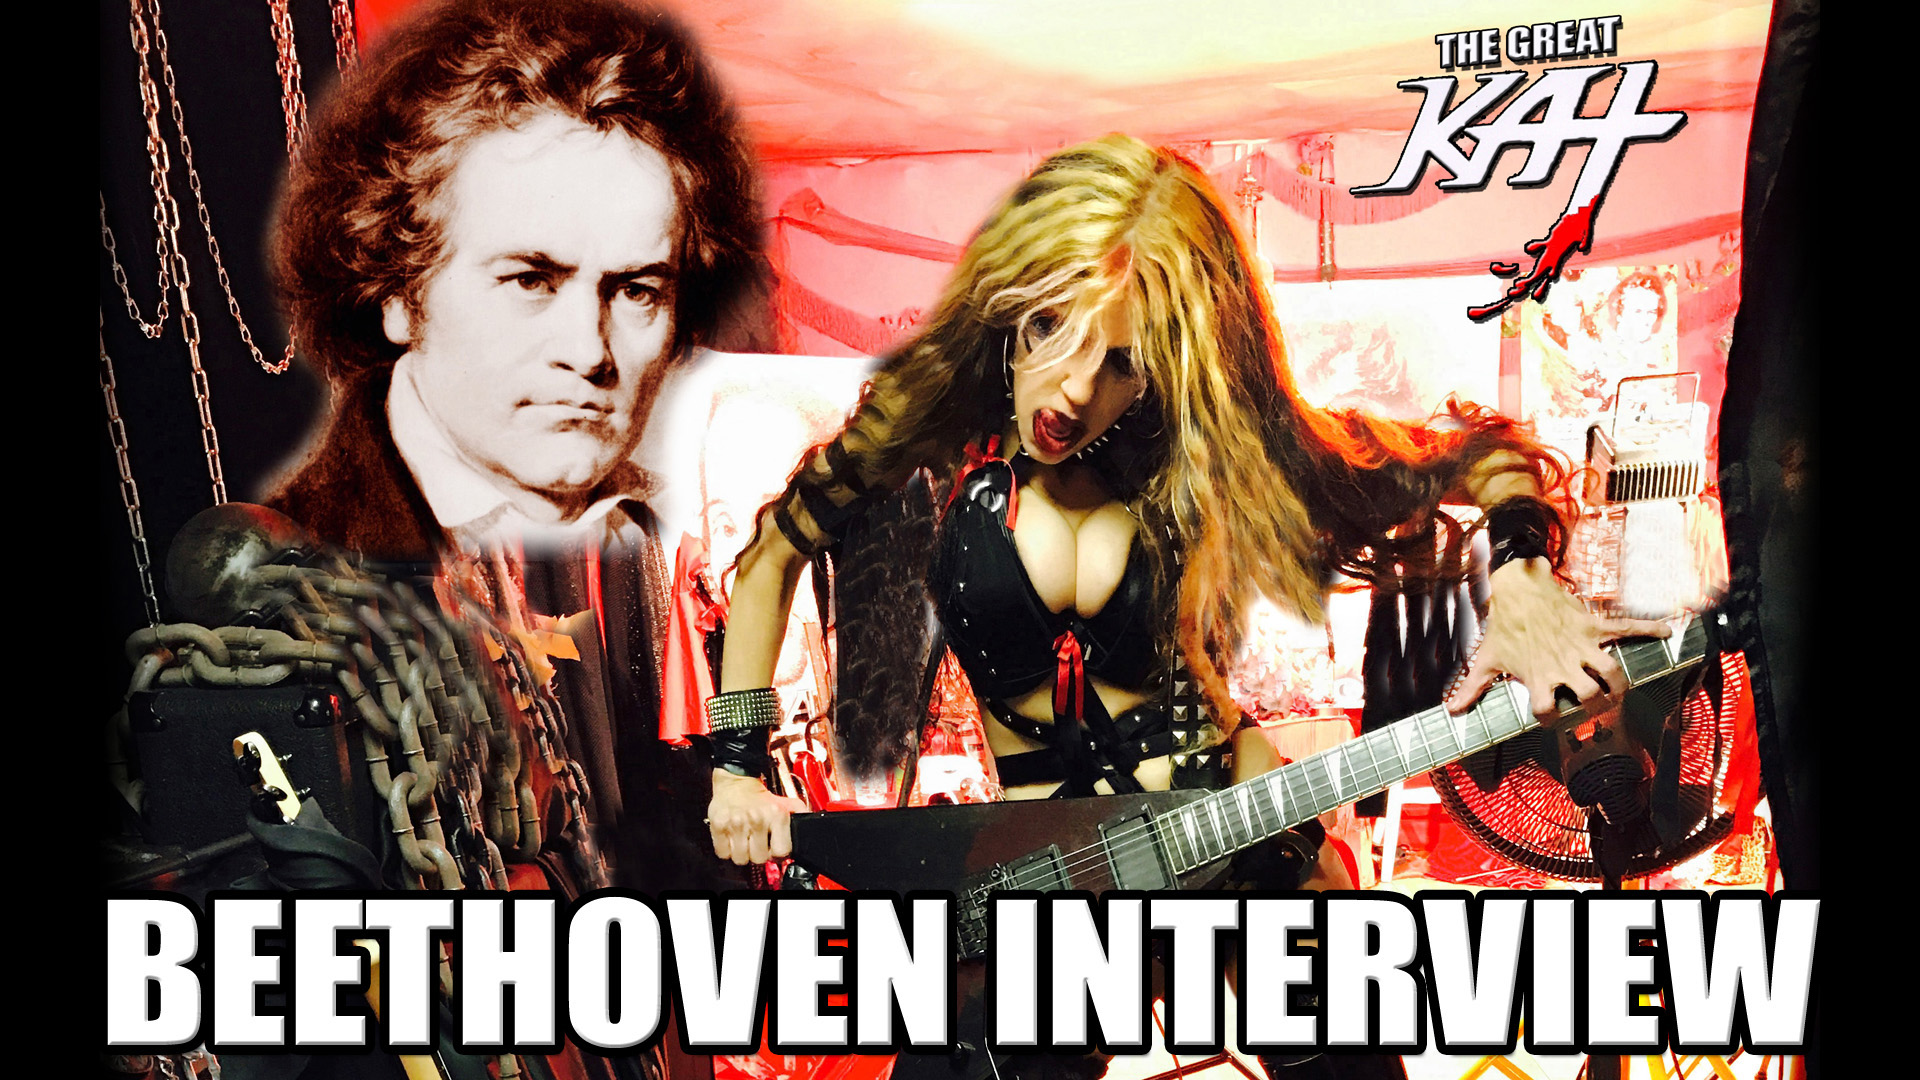 """BEETHOVEN INTERVIEW"" - ""KICK DOWN THE DOOR!!!!""- AMAZON PRIME PREMIERES THE GREAT KAT REINCARNATION of BEETHOVEN INTERVIEW!"